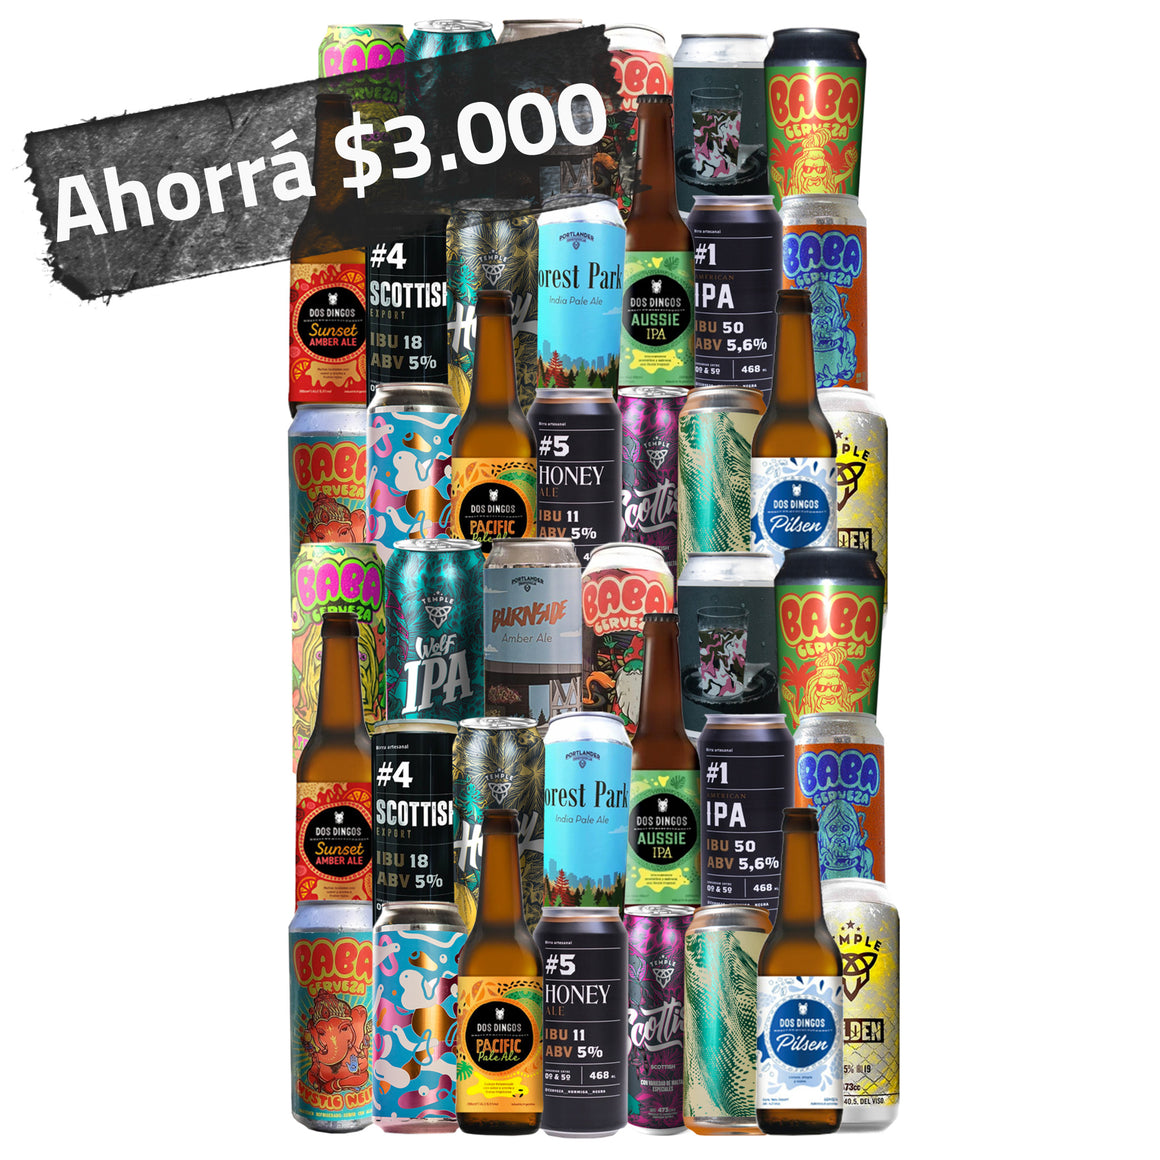 Promo Hot Week 46 birras🔥🍻